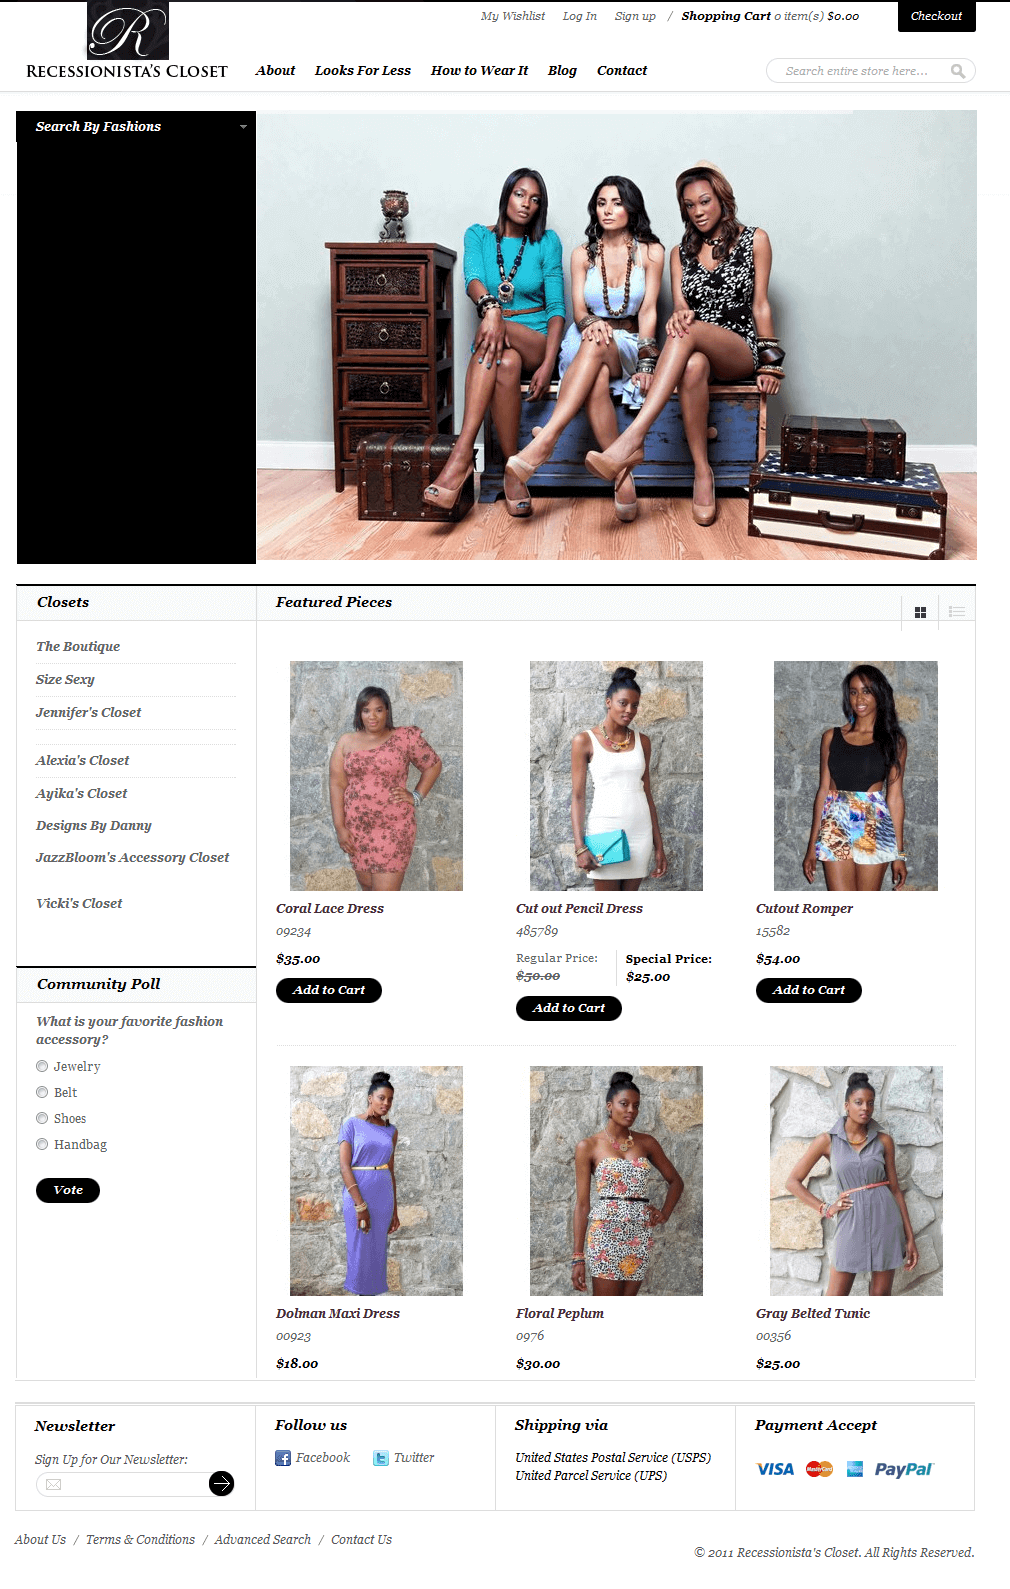 Magento Website for 'Recessionista's Closet' –Recycle Fashion Store